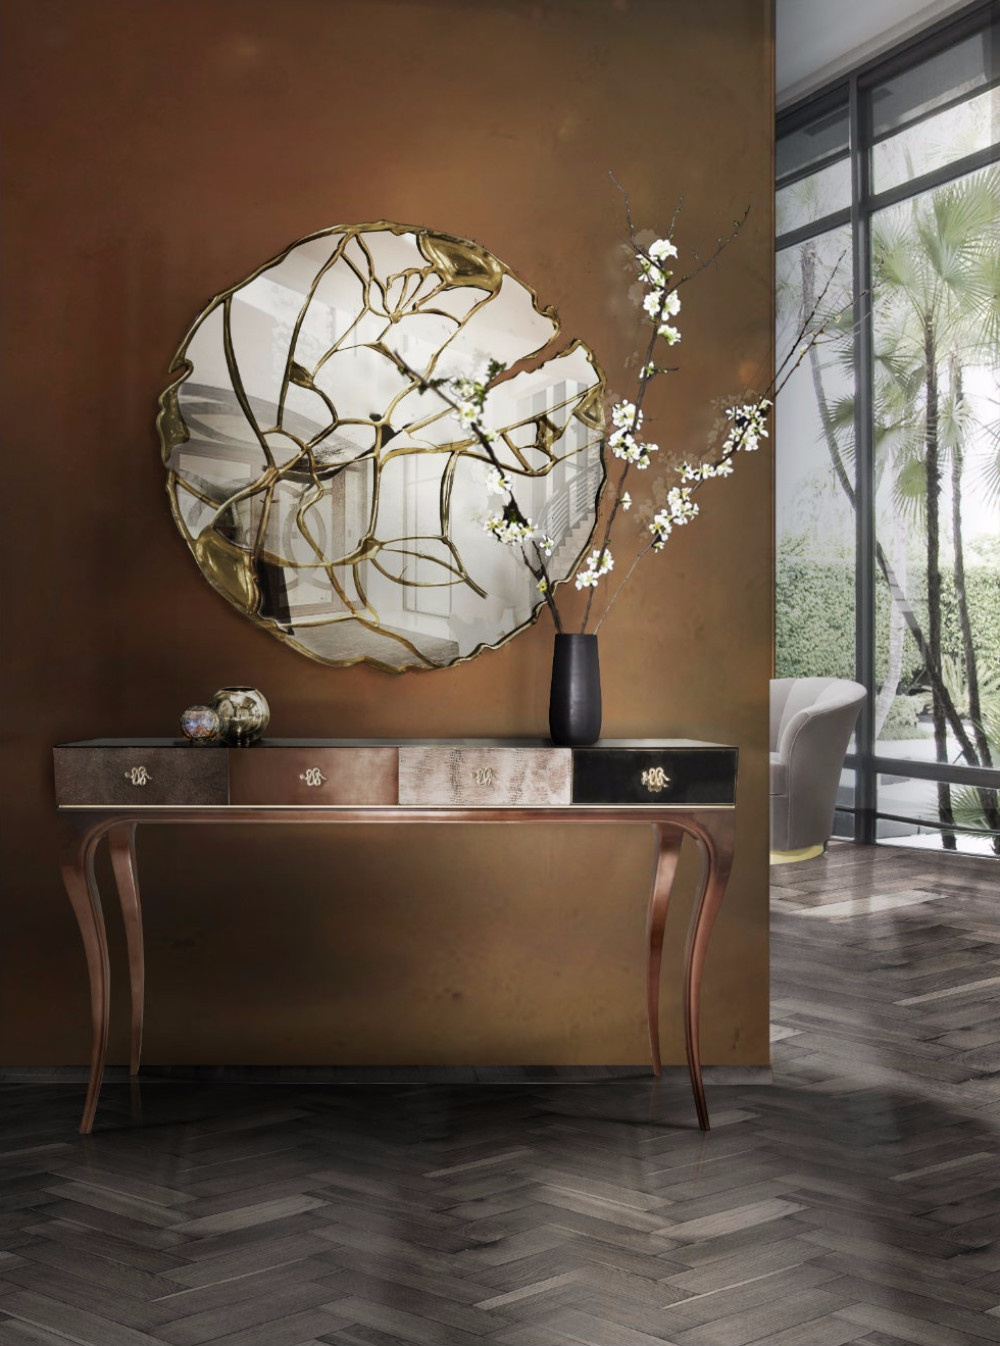 Standard Wall Mirrors Pertaining To Well Known 20 Exquisite Wall Mirror Designs For Your Living Room (View 11 of 20)